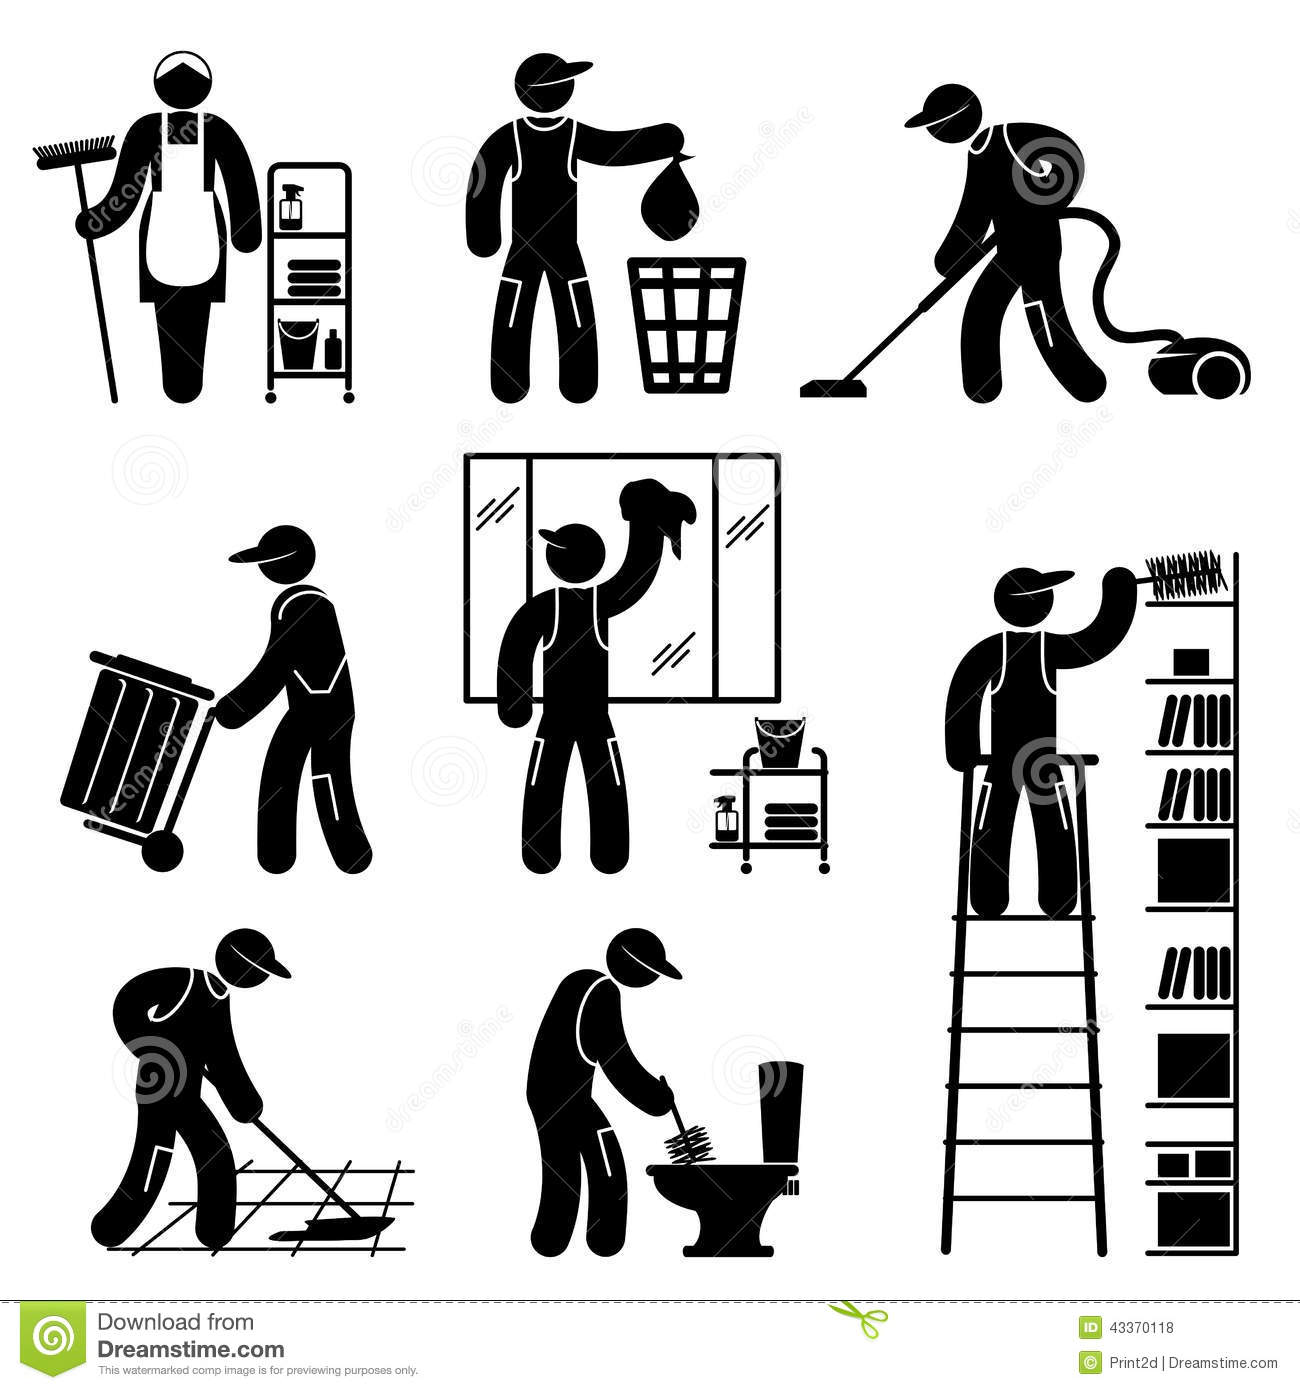 Set black and white vector icons of cleaner people.